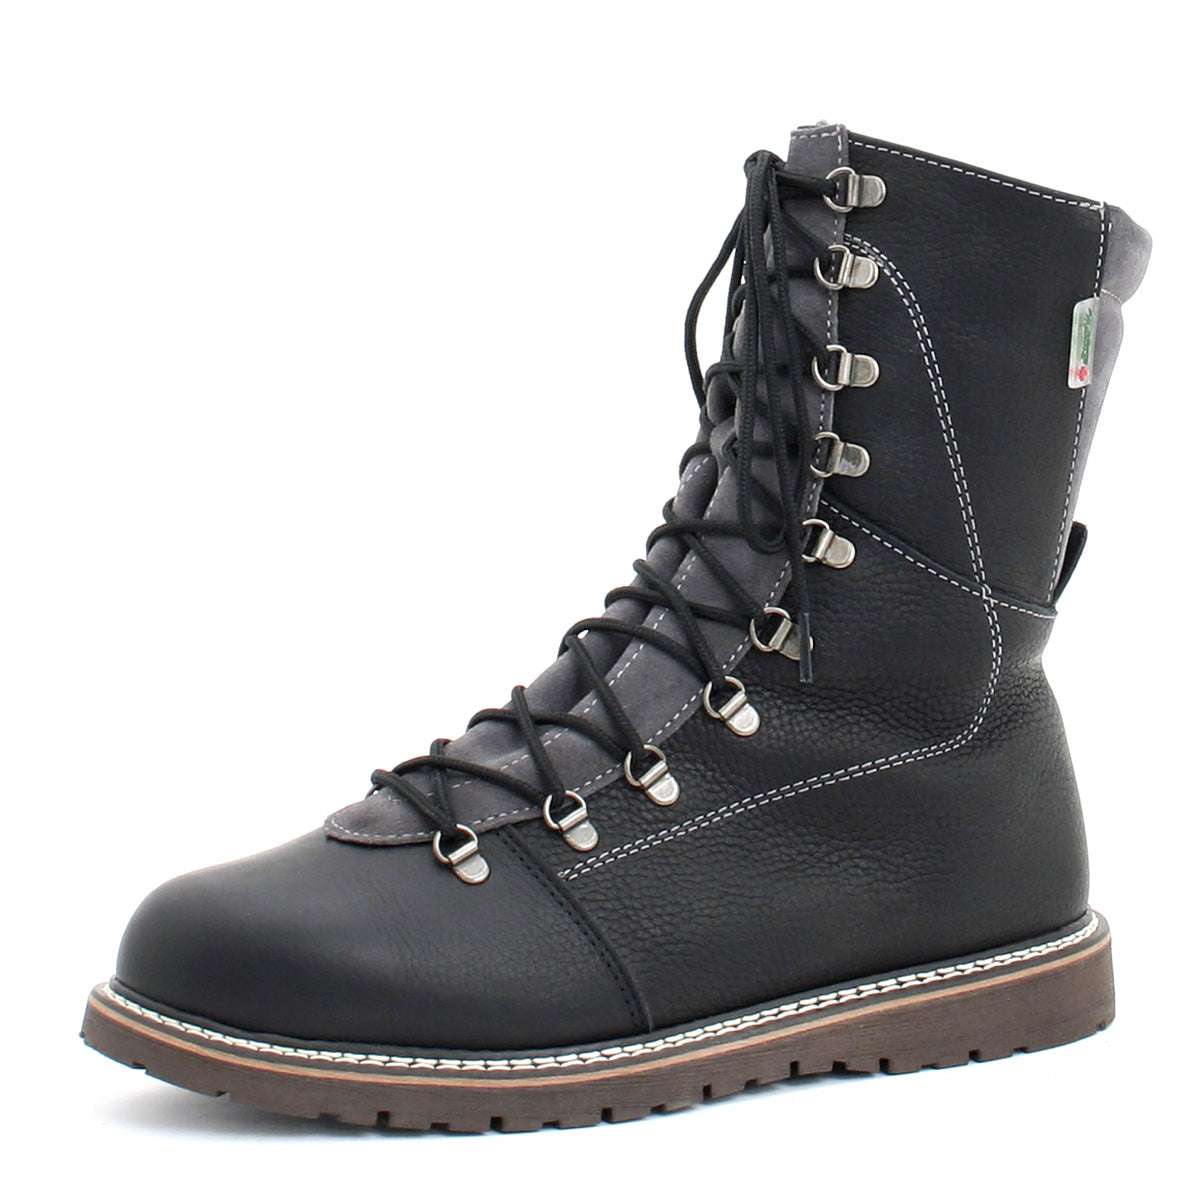 Homme Amimoc Amimoc Collection Homme Collection Collection Collection Homme Amimoc LUjVqSGMzp